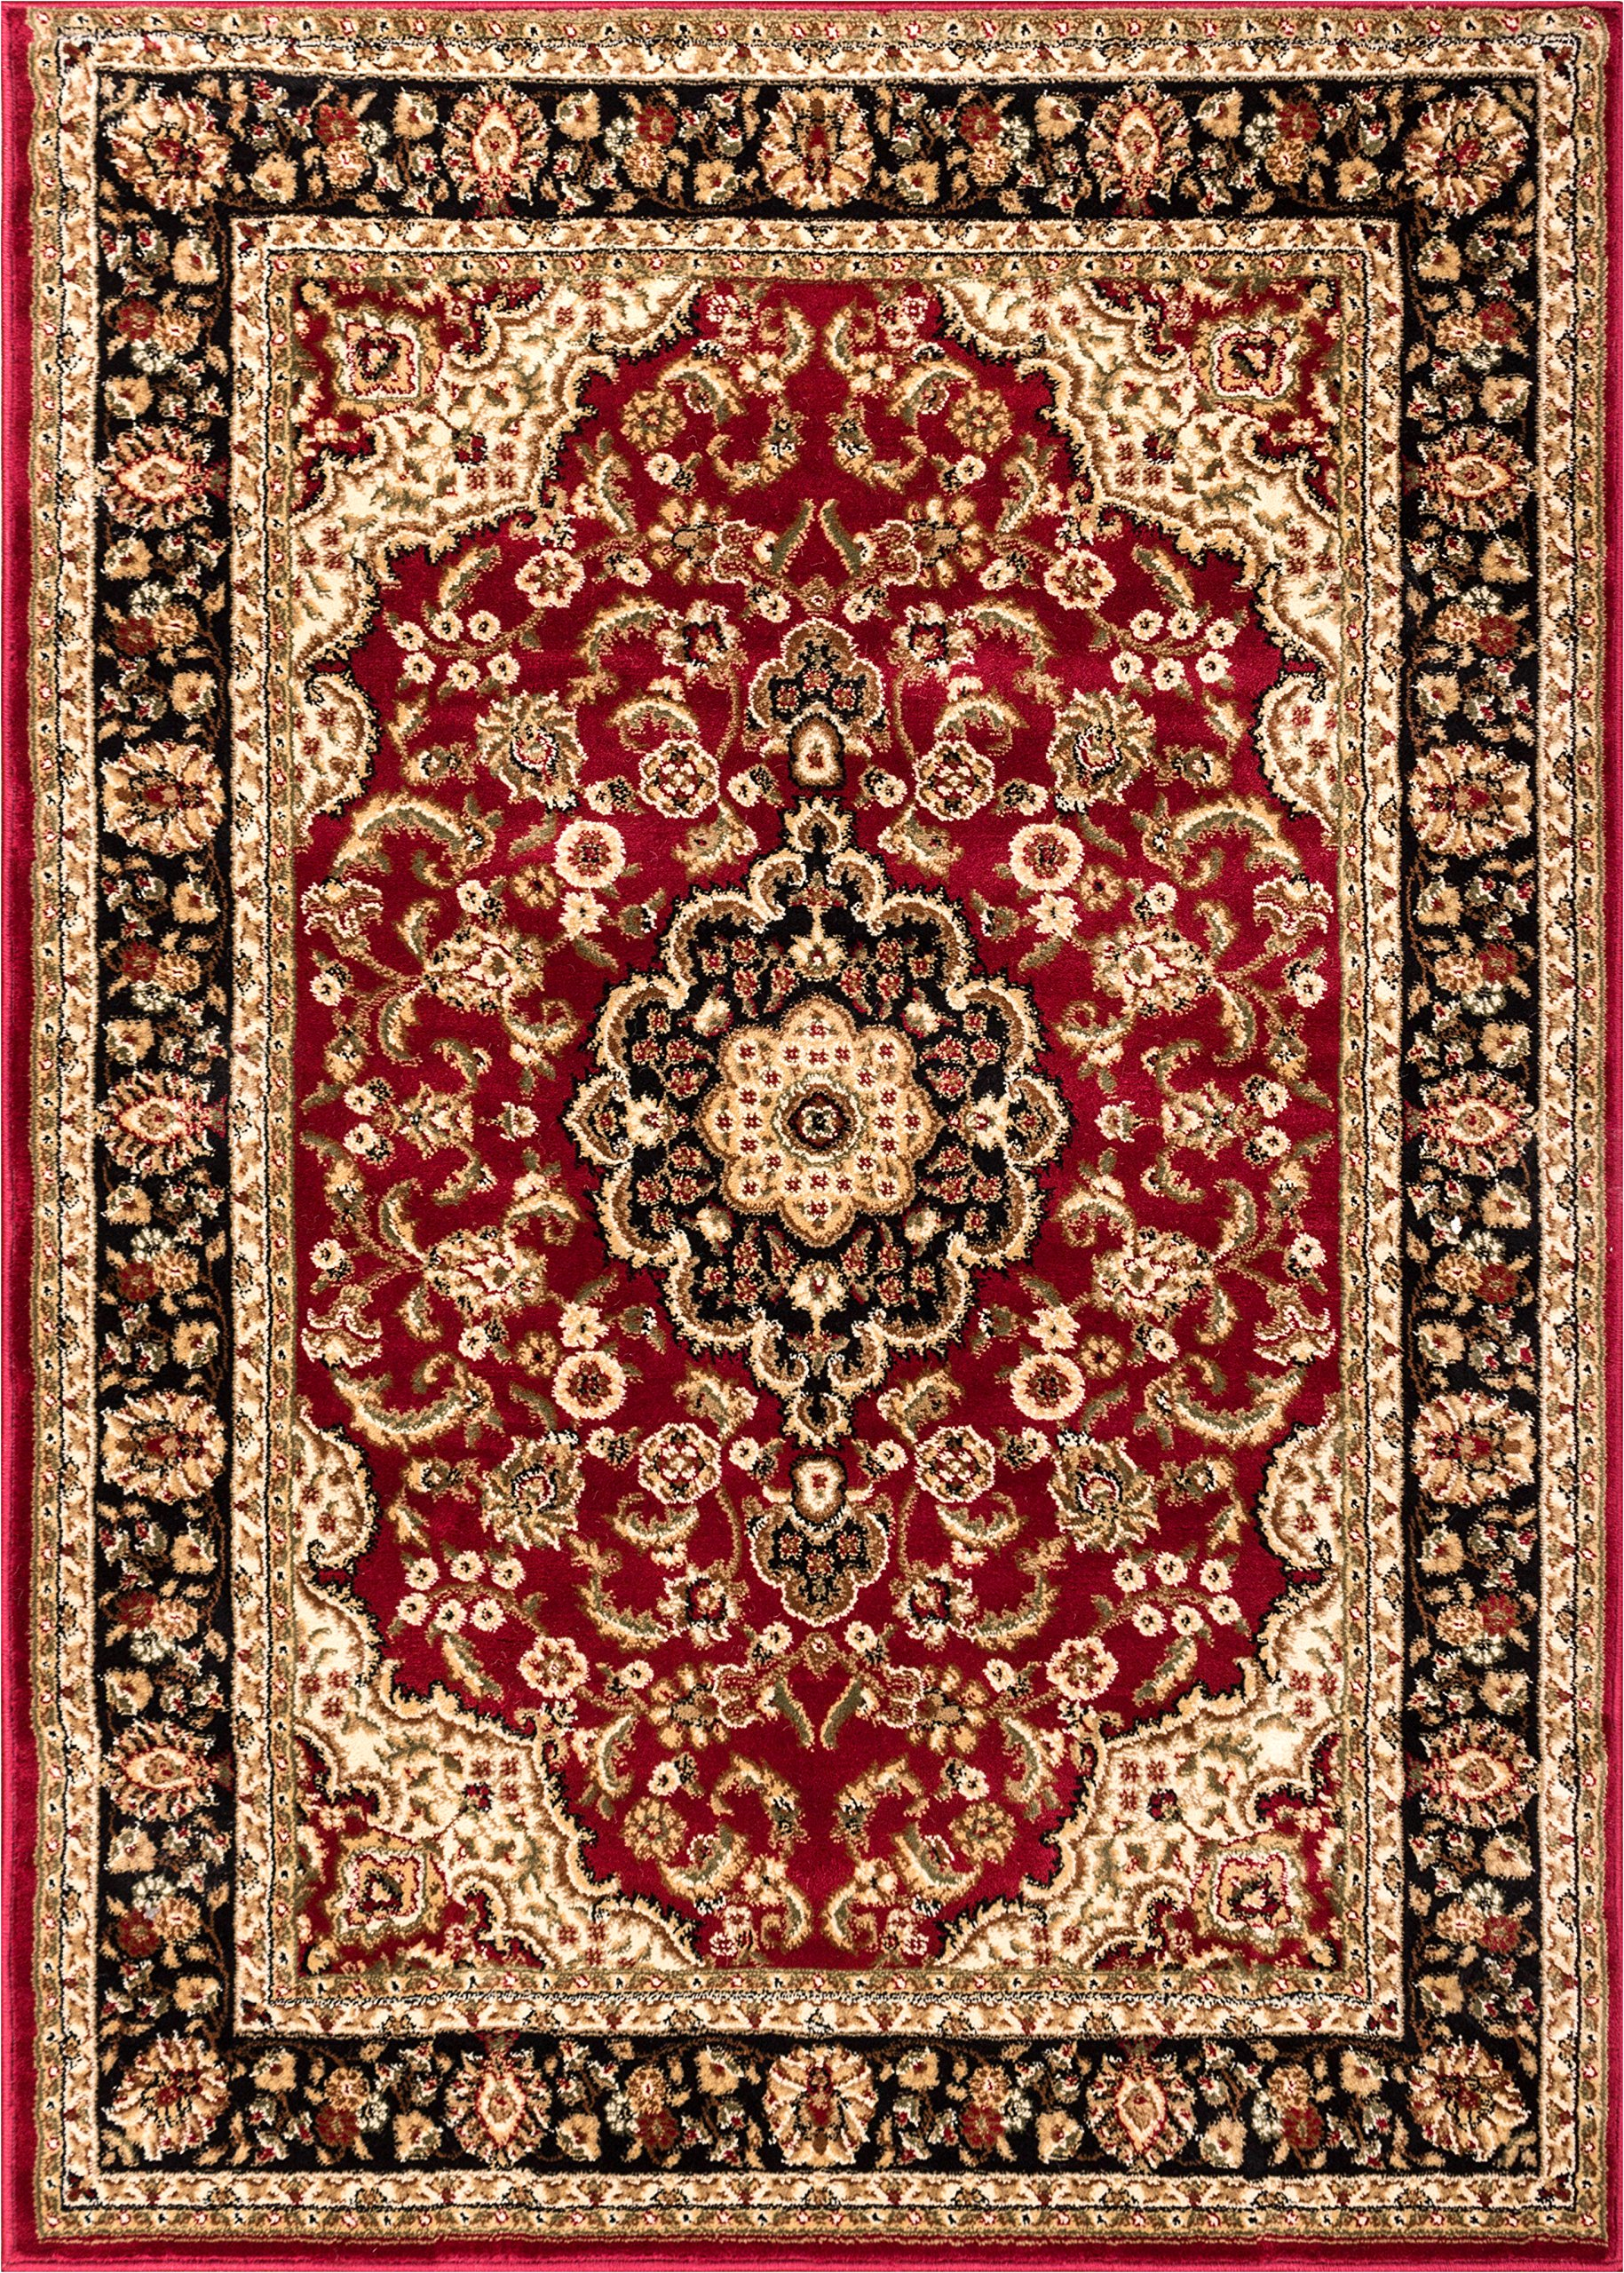 Well Woven Barclay Medallion Kashan Red Traditional Area Rug 7'10'' X 9'10''